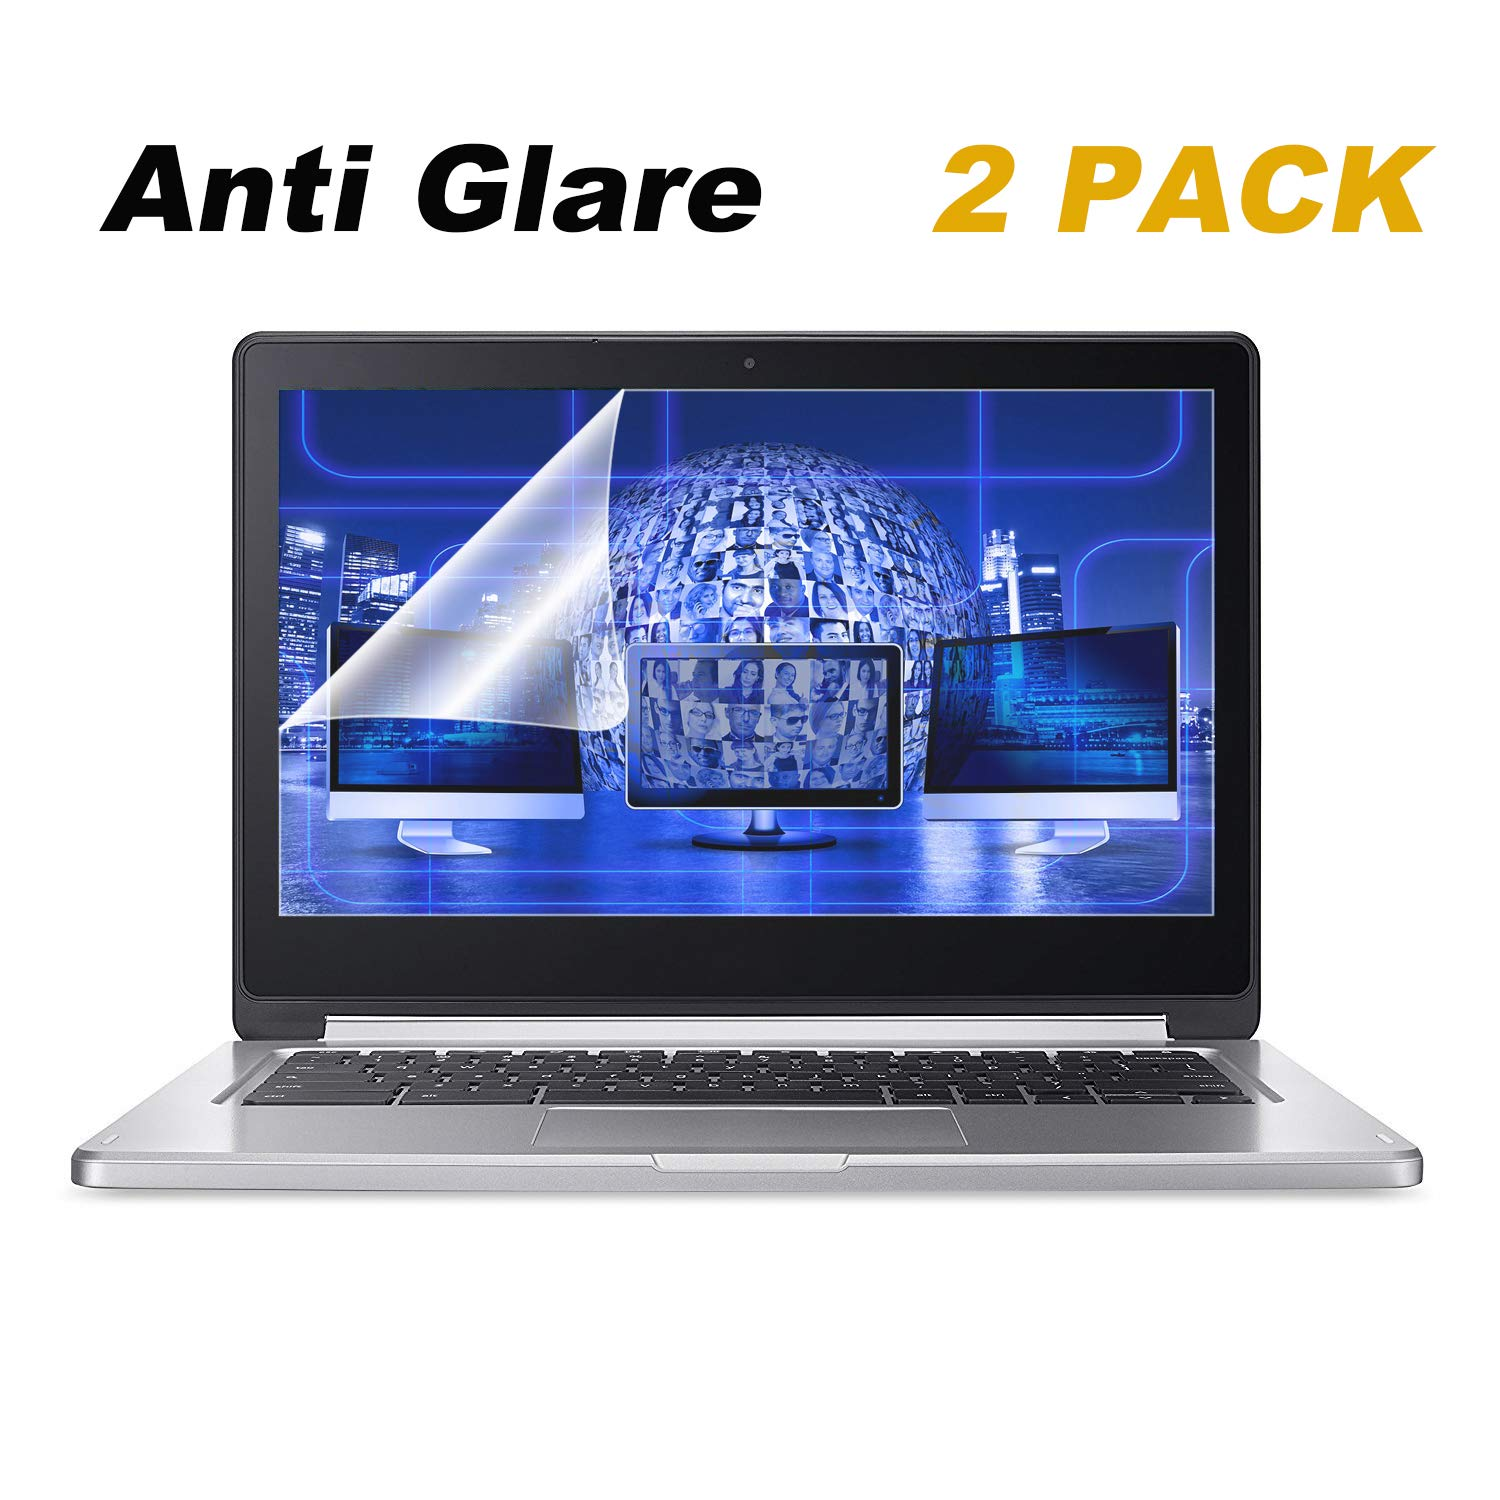 "2 Pack 13.3"" Anti Glare Screen Protector Compatible"